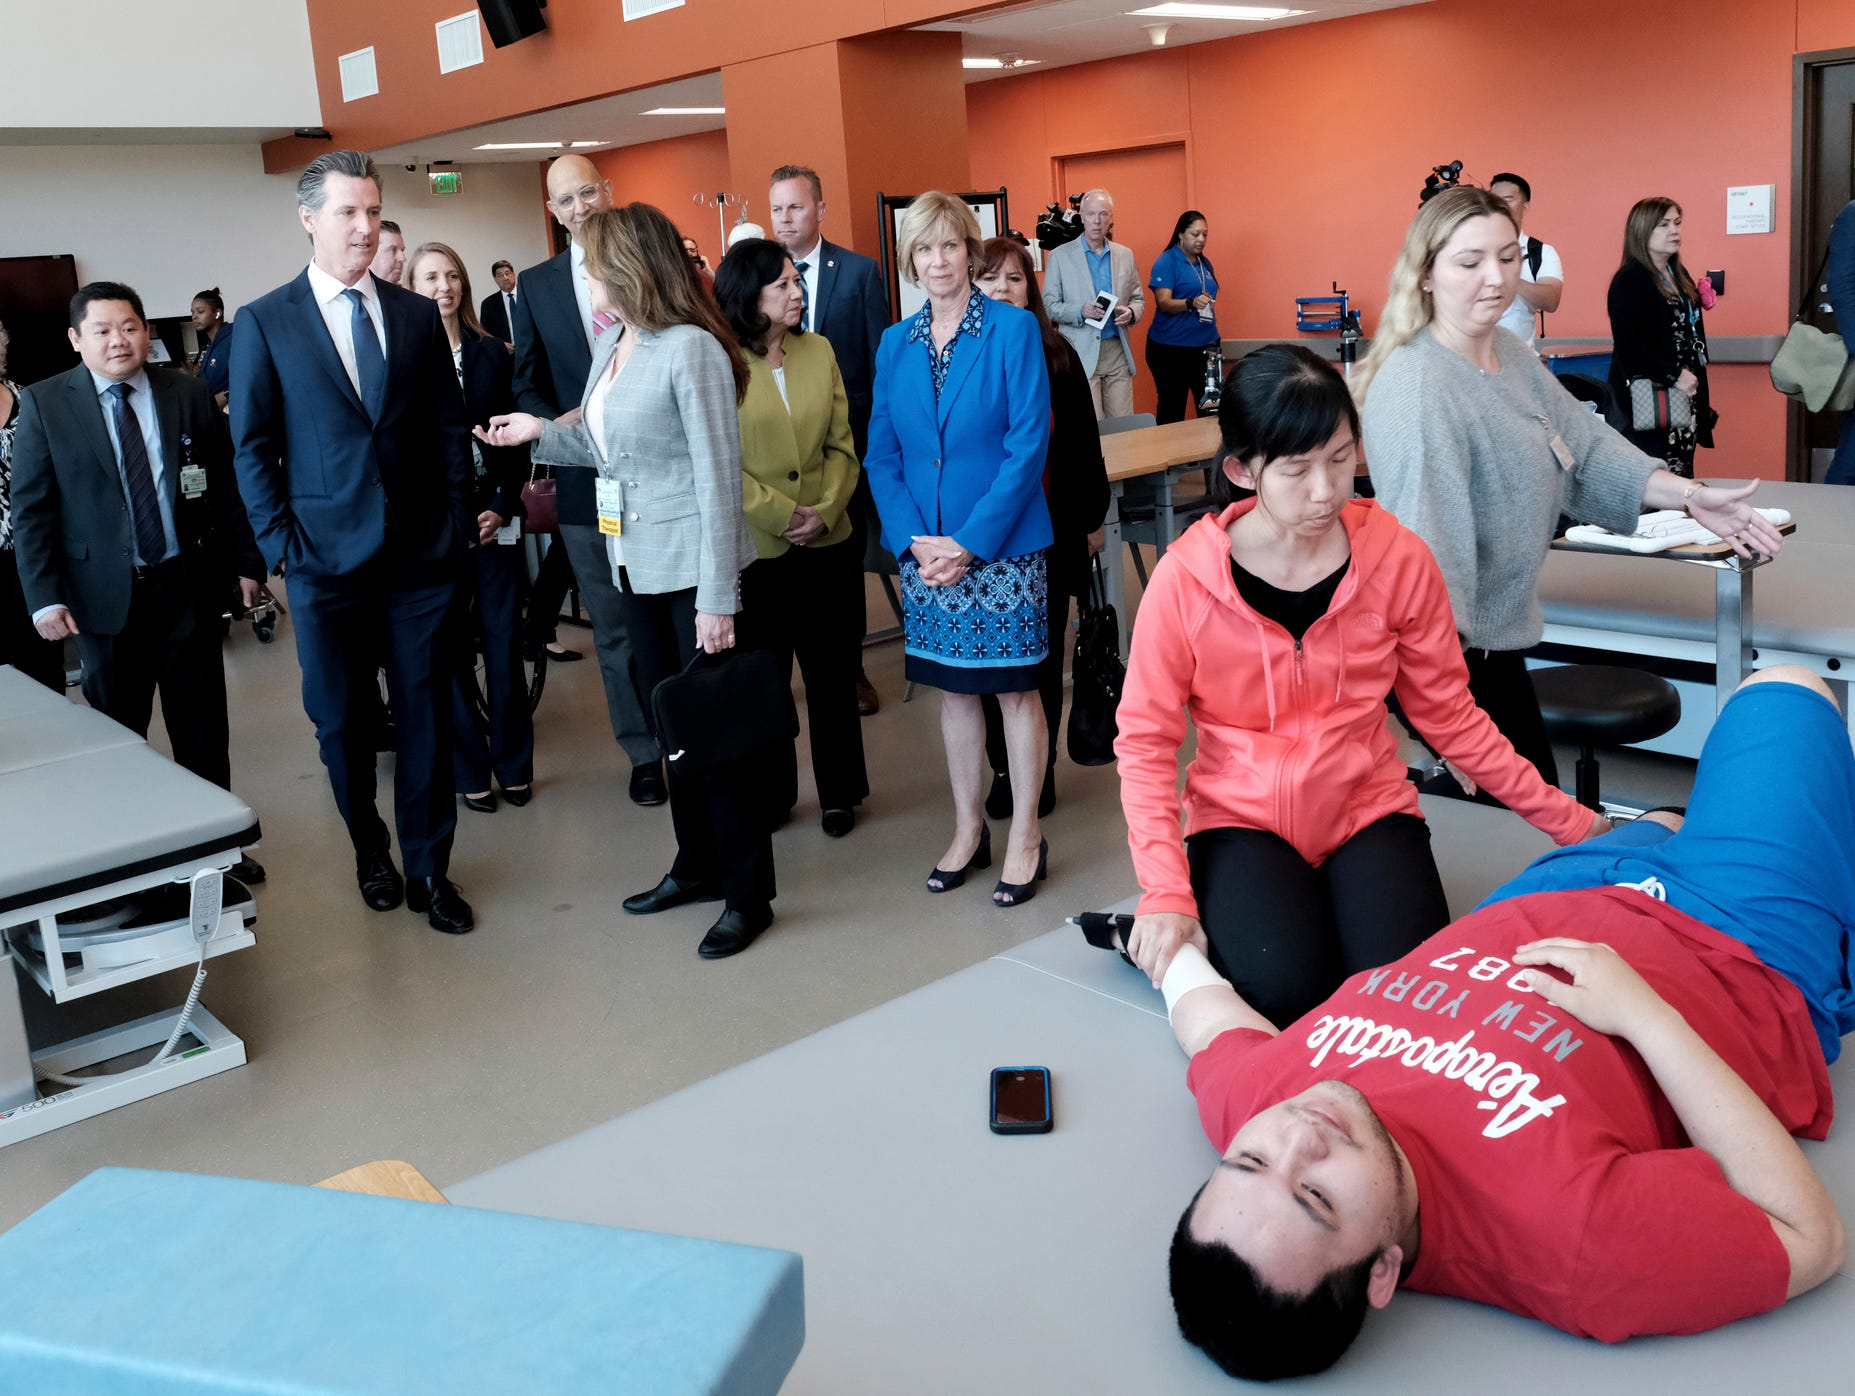 Gov. Gavin Newsom, second from left, visits the Rancho Los Amigos National Rehabilitation Center in Downey on Wednesday, April 17, 2019.